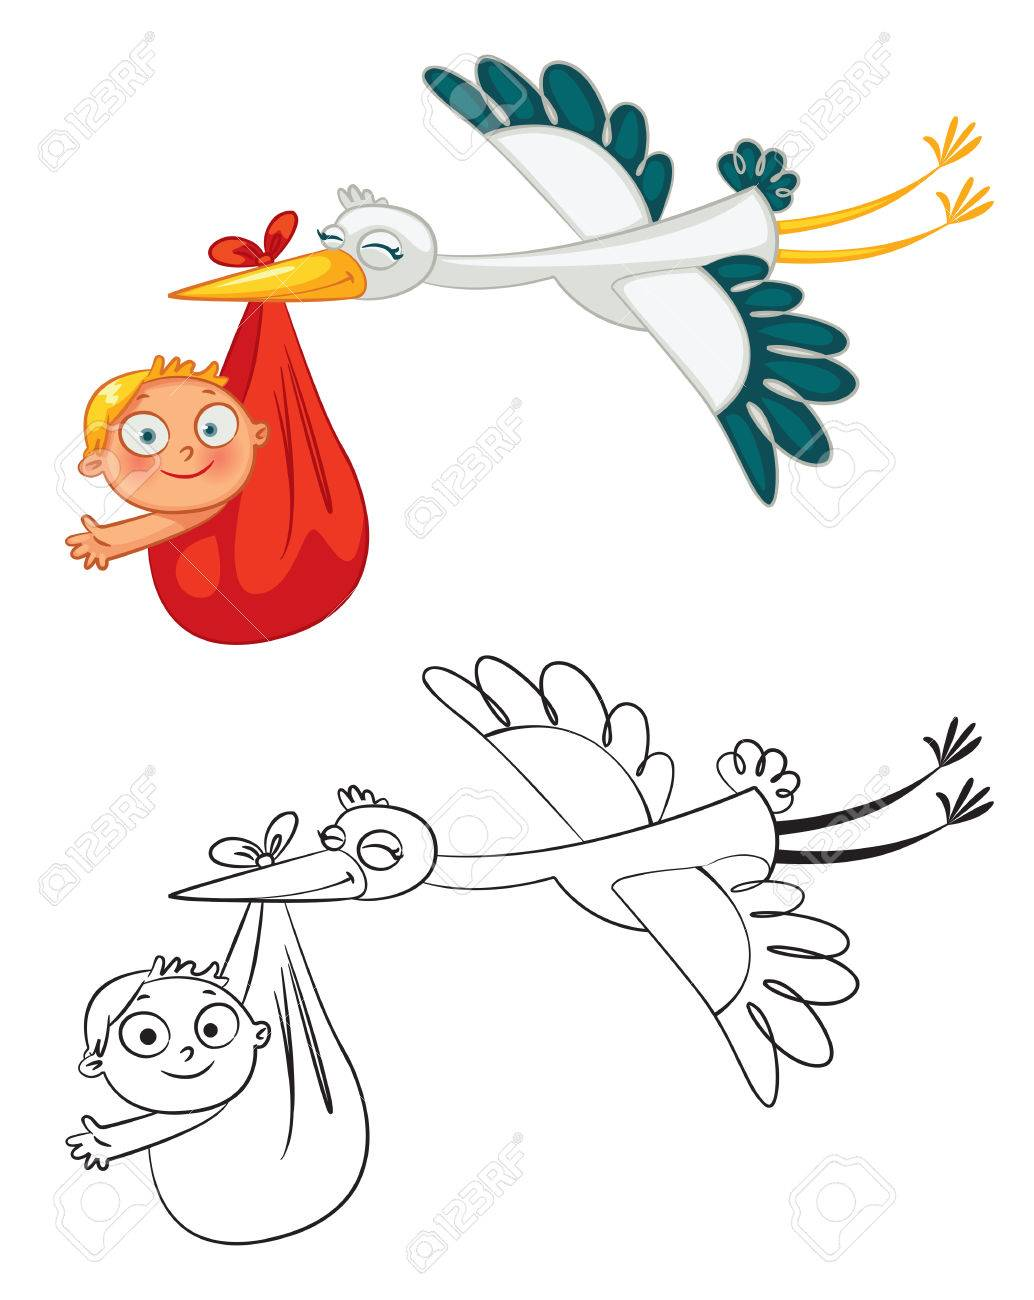 Stork carrying a cute baby. Funny cartoon character. Coloring book. Vector illustration. Isolated on white background. Set - 50123157